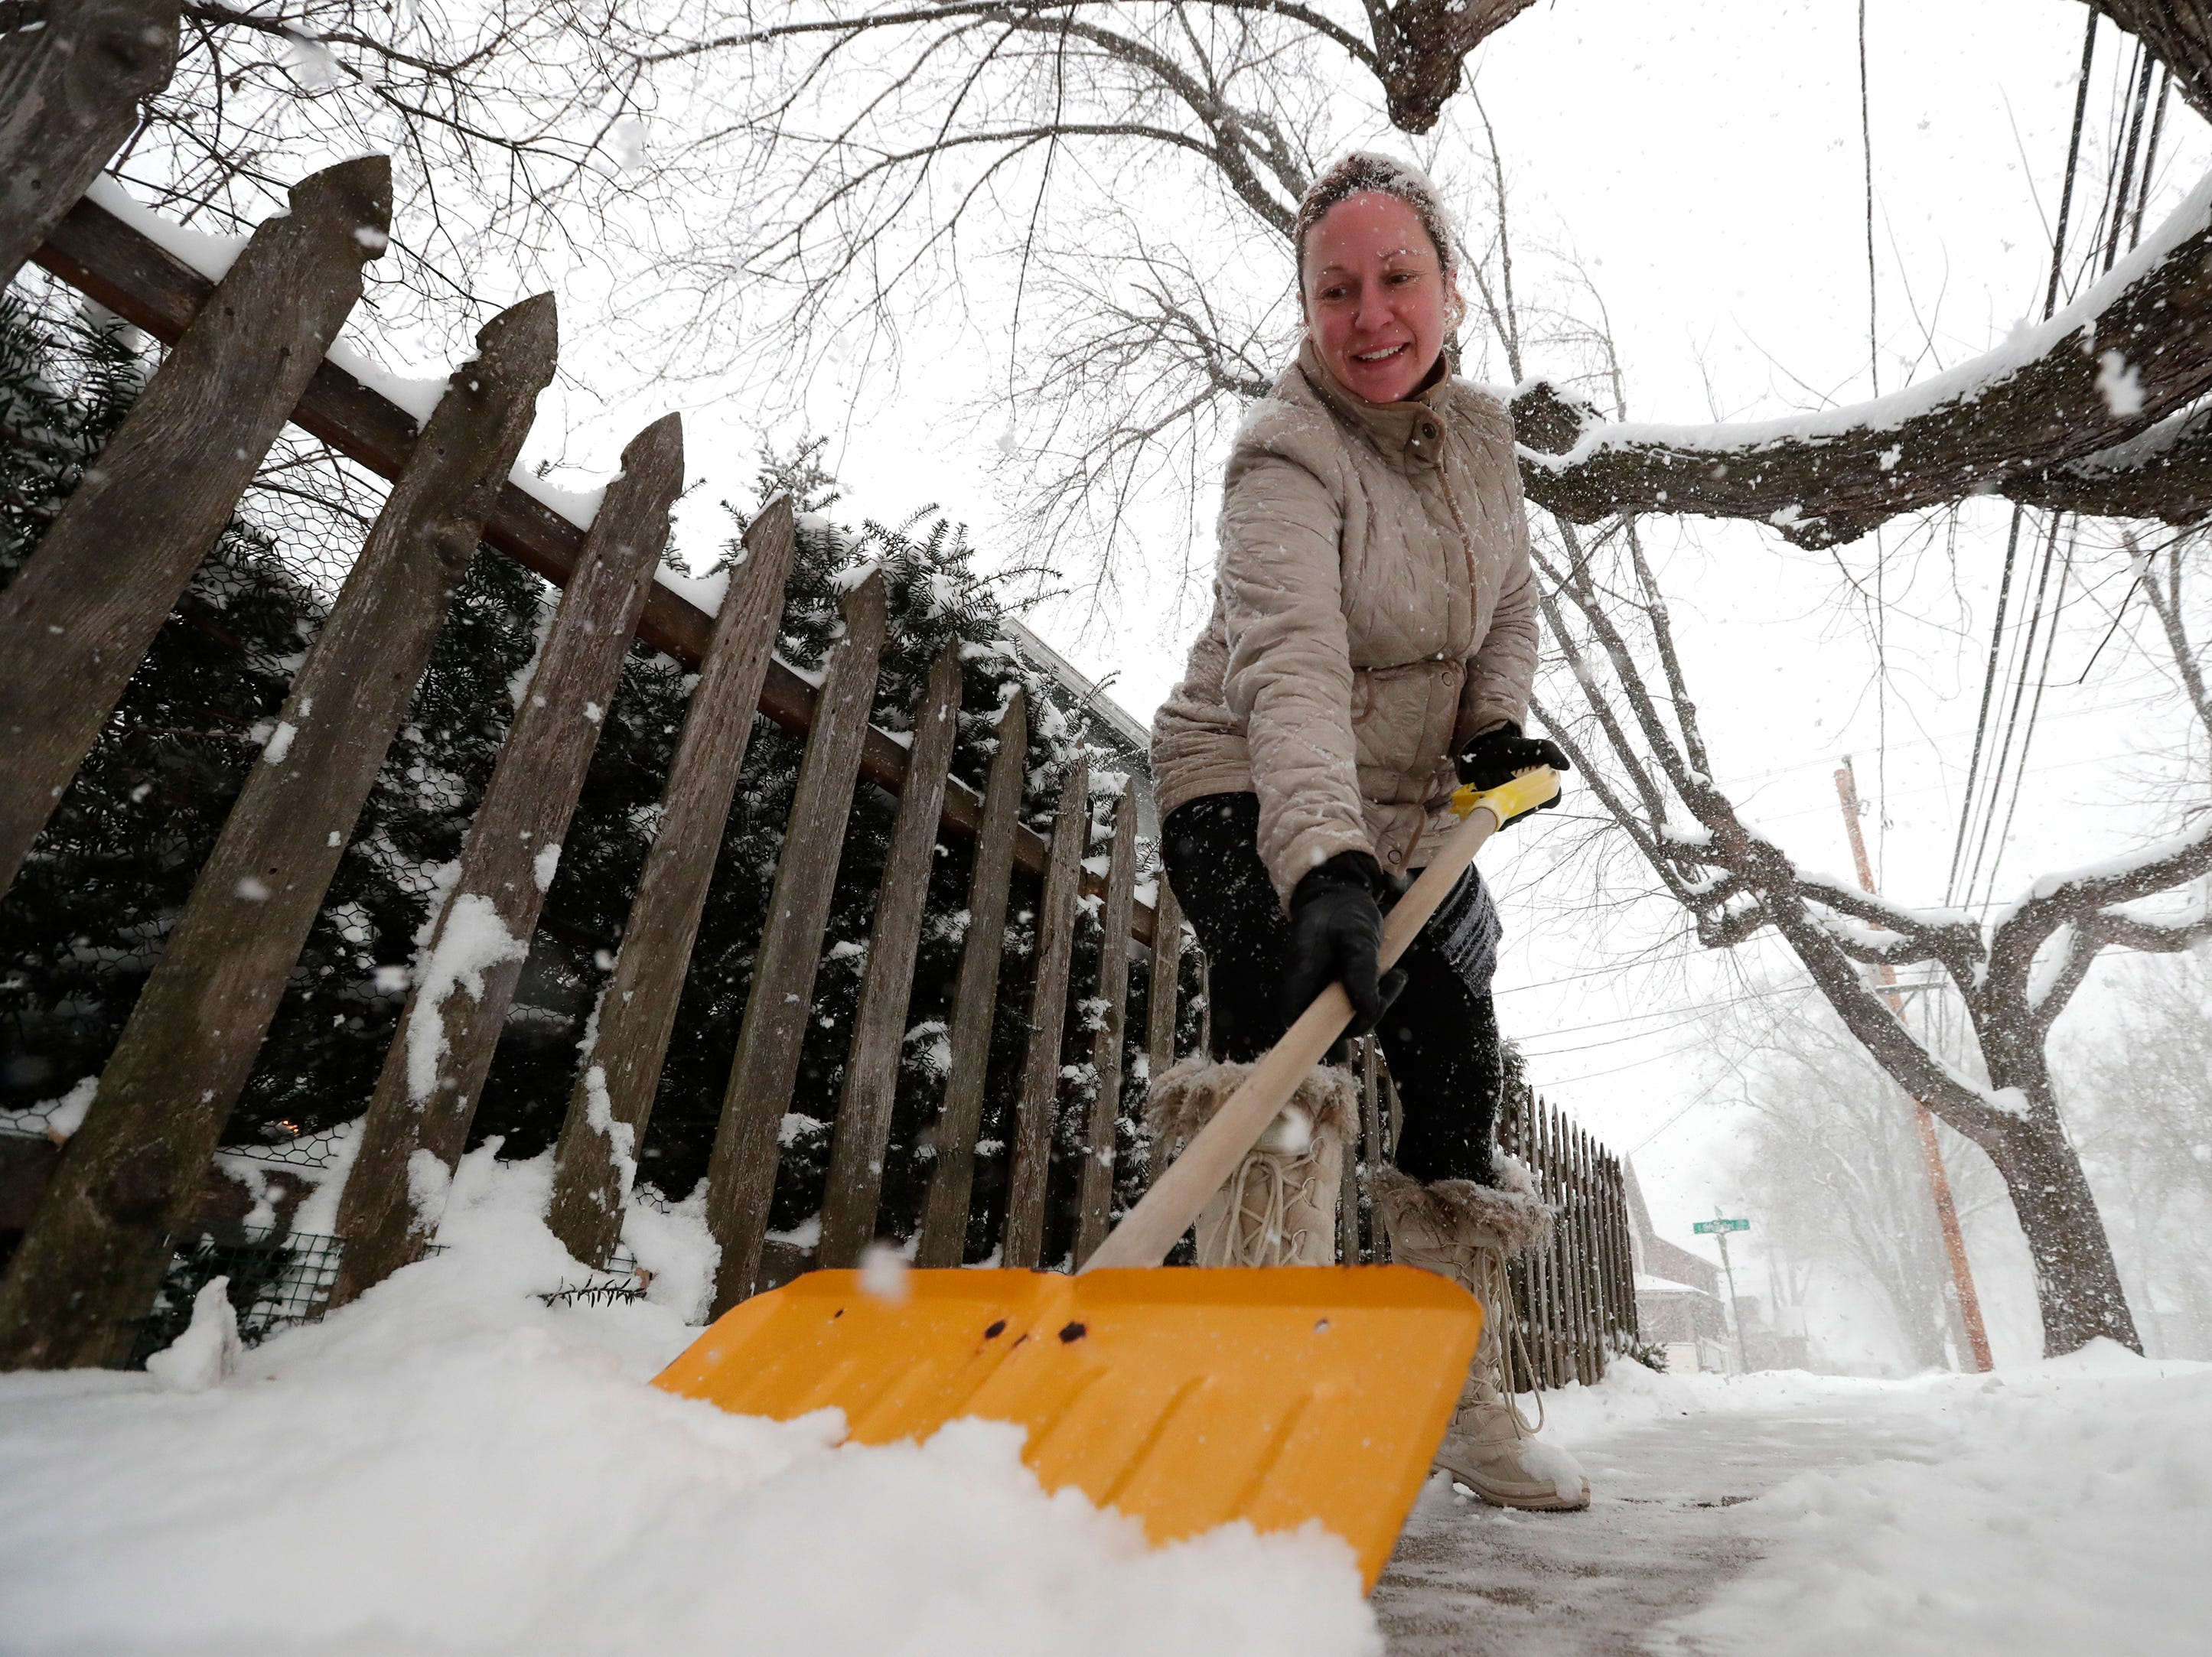 Paige Knoke of Appleton shovels the sidewalk in front of her home along Brewster Street during a snowstorm Wednesday, January 23, 2019, in Appleton, Wis. 